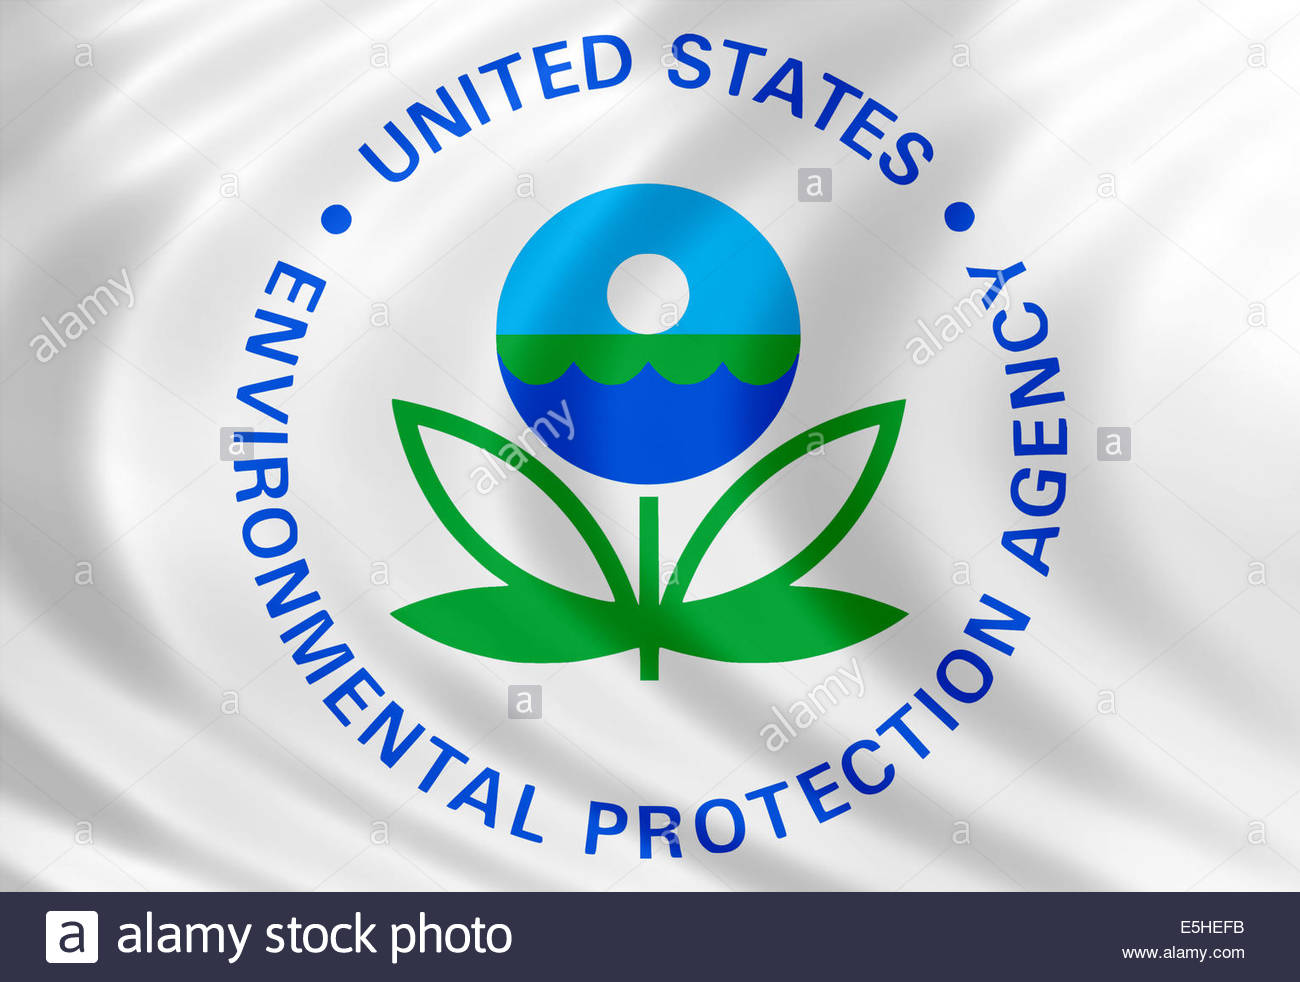 United States Environmental Protection Agency icon logo with flag of silk - Stock Image